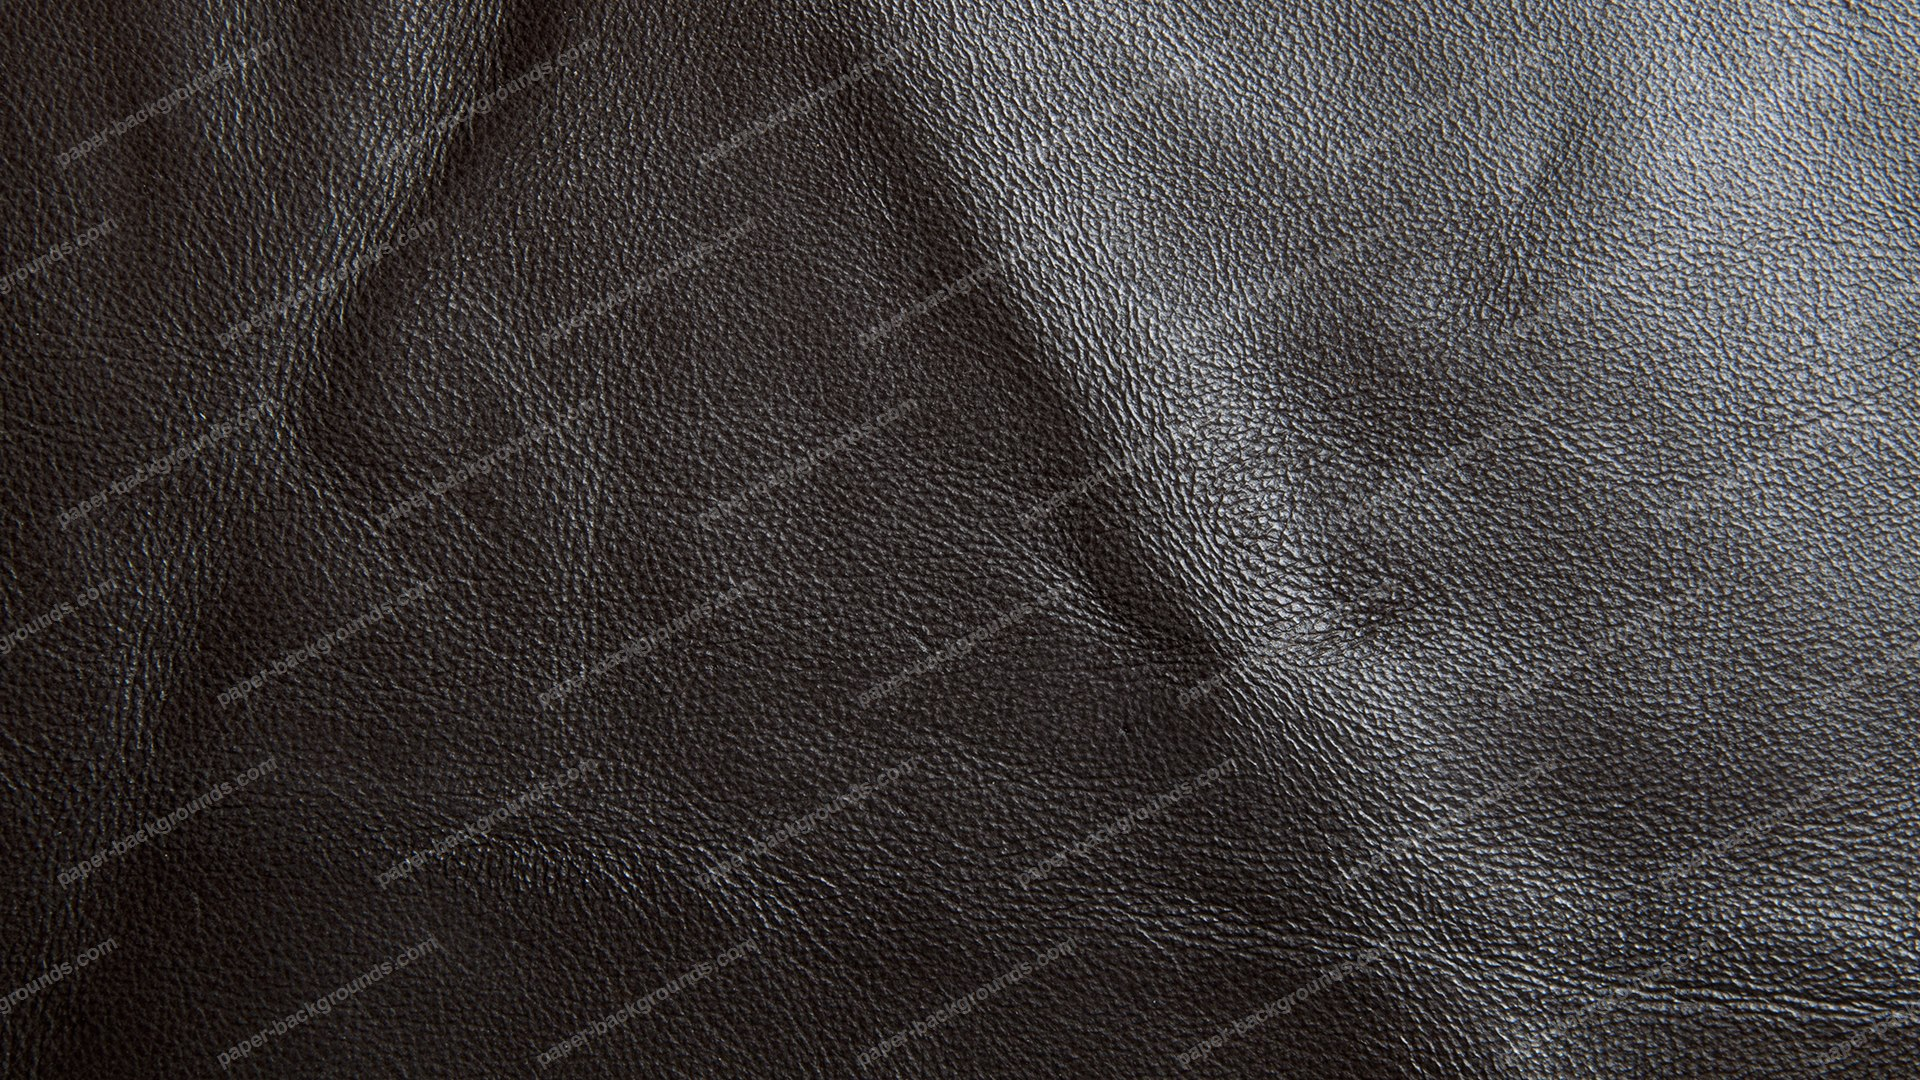 Black Leather Texture HD 1920 x 1080p